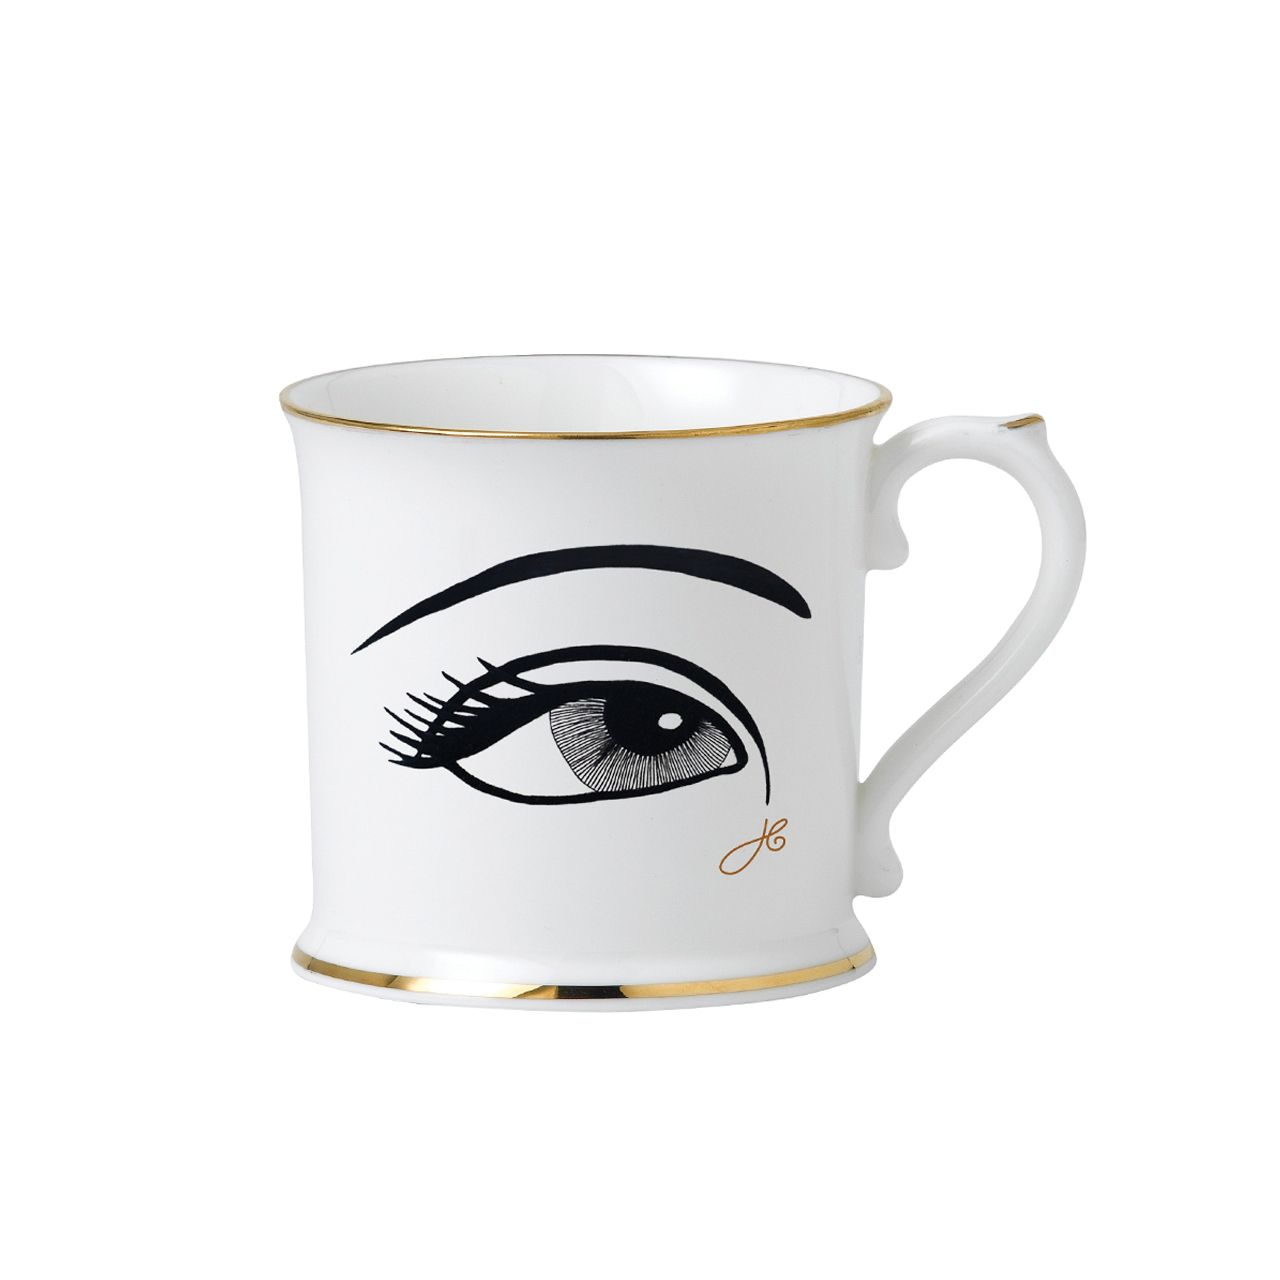 Attractive This Striking China Mug Depicts My Iconic Eye Design In Black With Gold  Edges. The